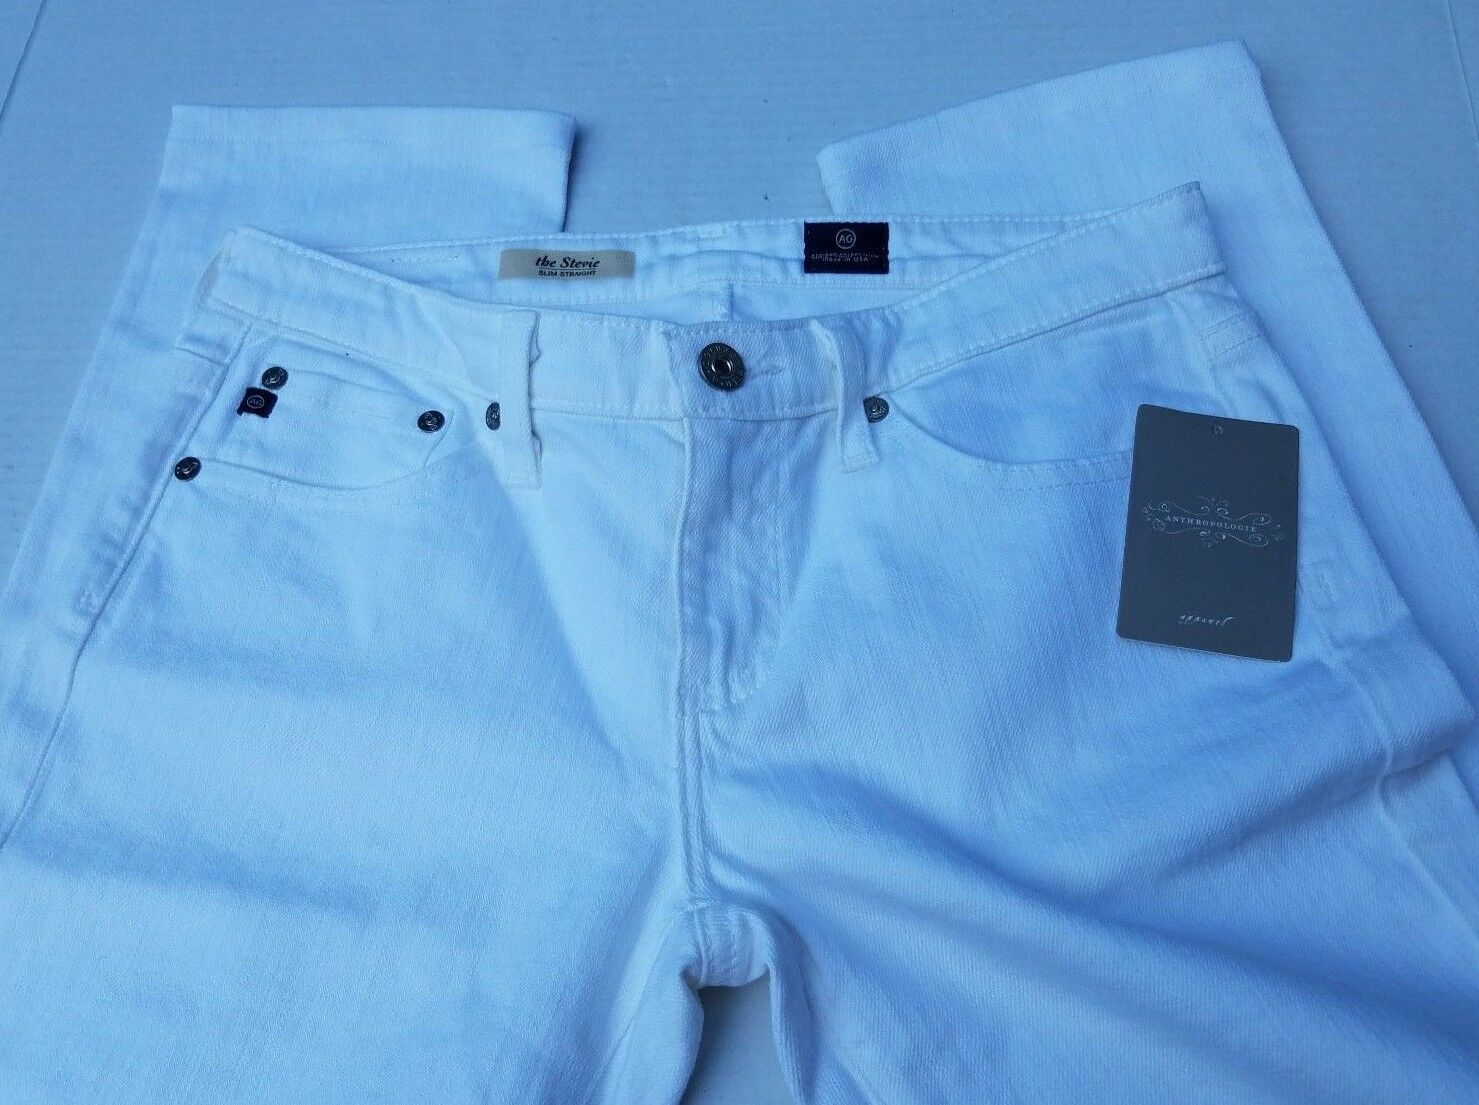 27 Anthropologie AG le Stevie Jeans Slim Straight Weiß USA Adriano Goldschmied